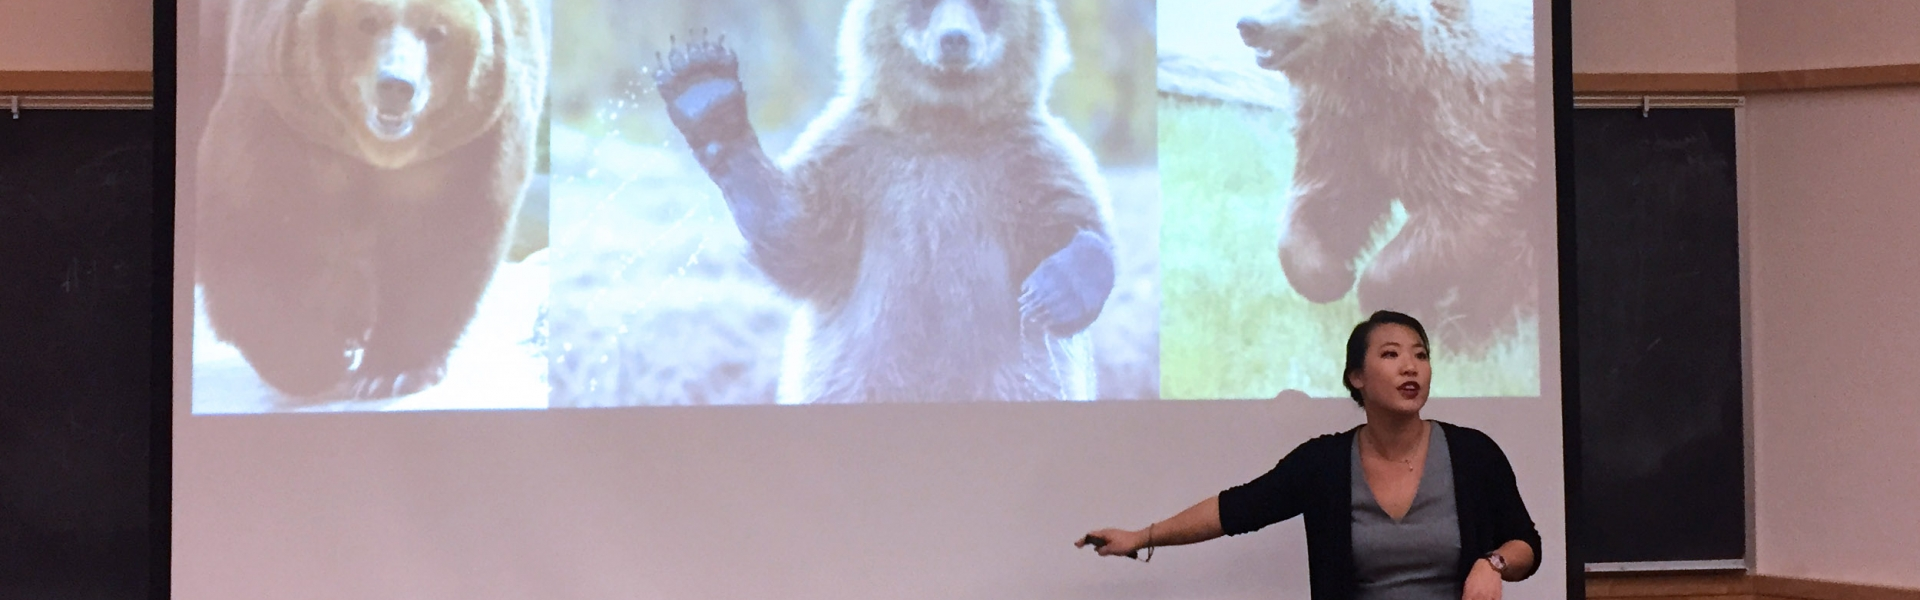 PhD student presents a slide of bears